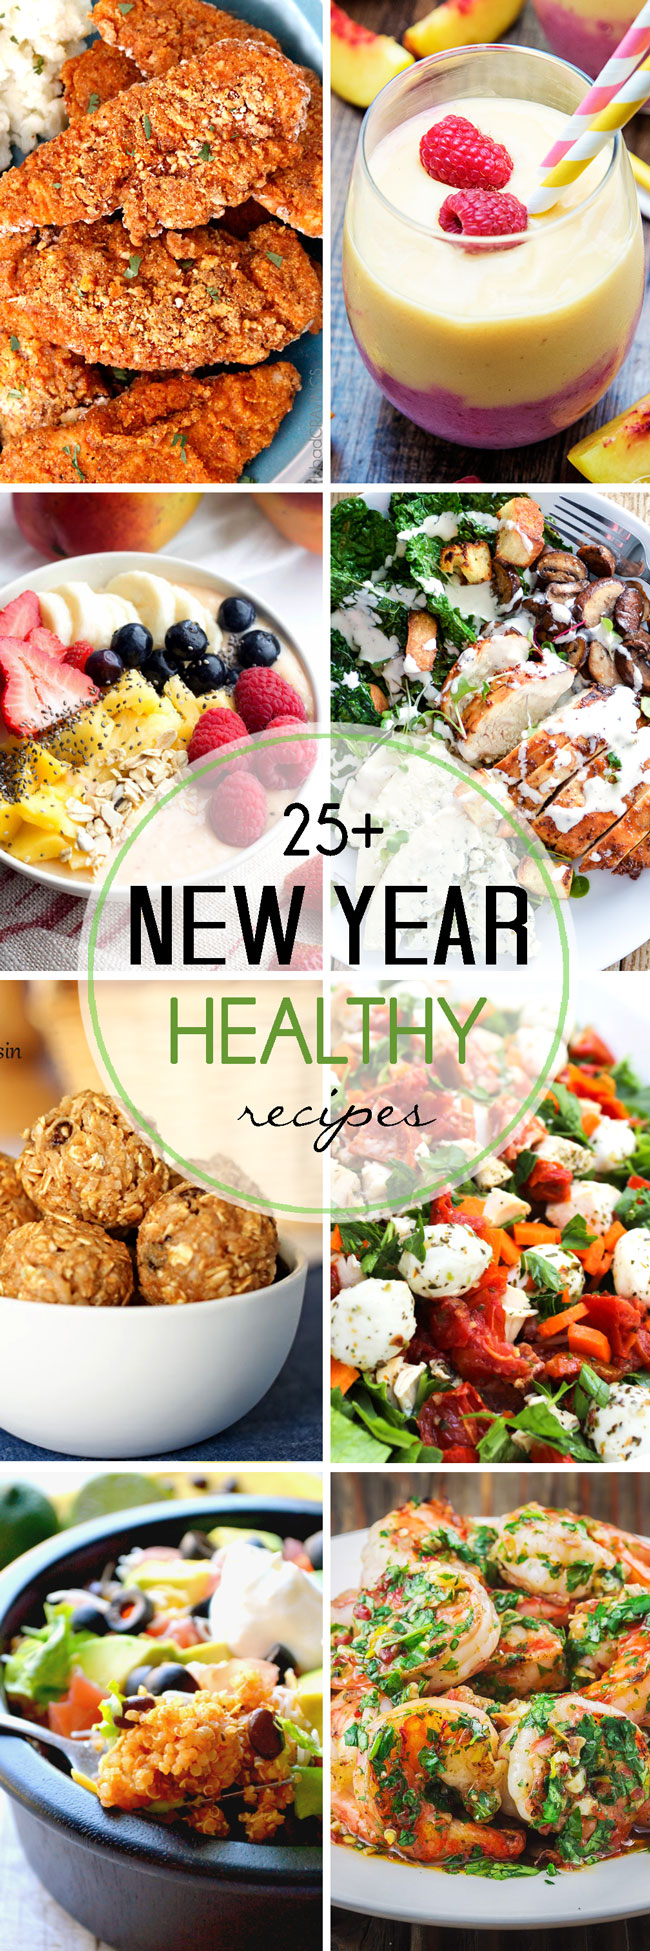 a collection of healthy recipes to kick of the new year